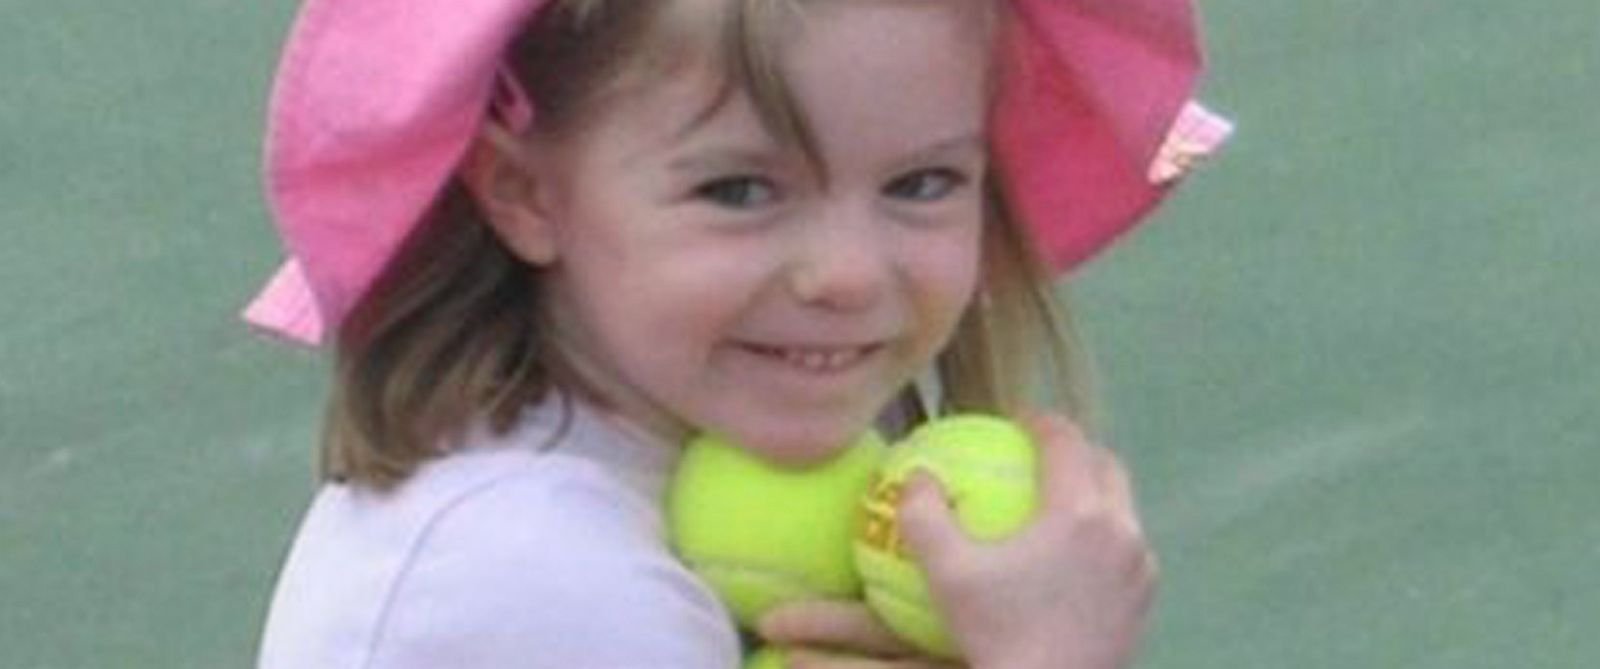 PHOTO: Madeleine McCann is pictured in this undated file photo, released, Oct. 13, 2013, by the London Metropolitan Police.